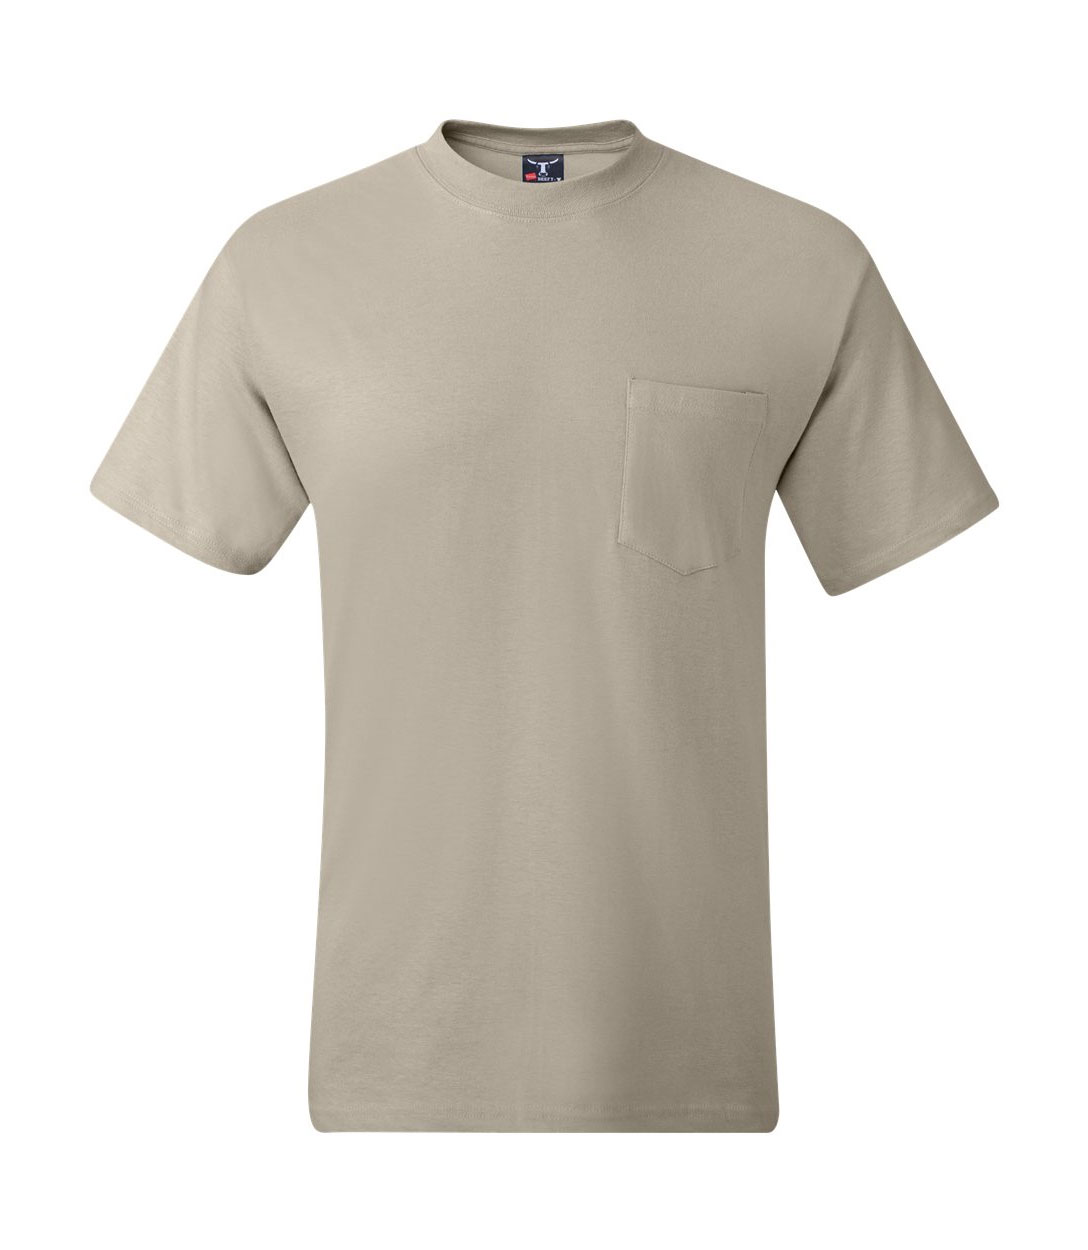 Hanes 100% Cotton Pocket Beefy-T